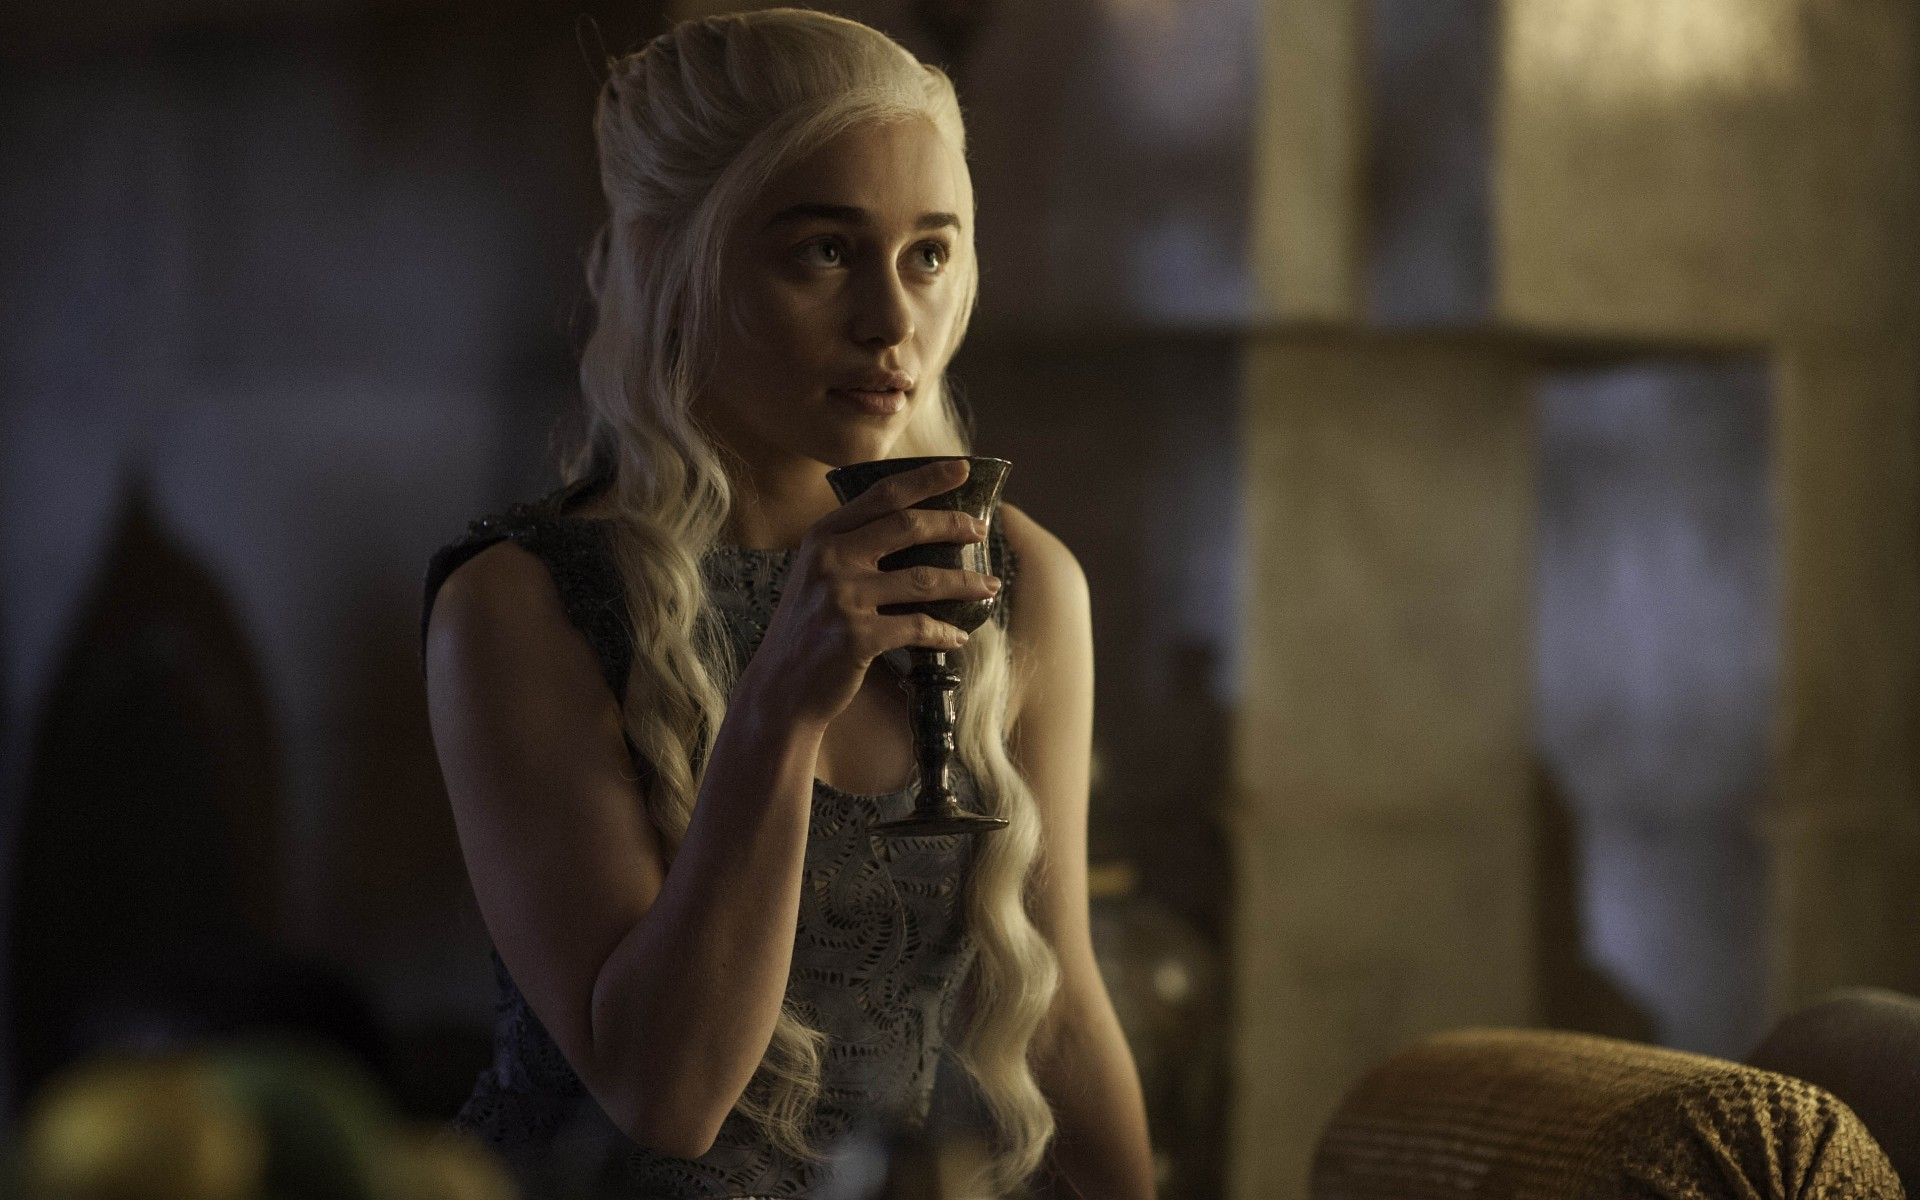 Daenerys-Targaryen-personnage-de-Game-of-Thrones